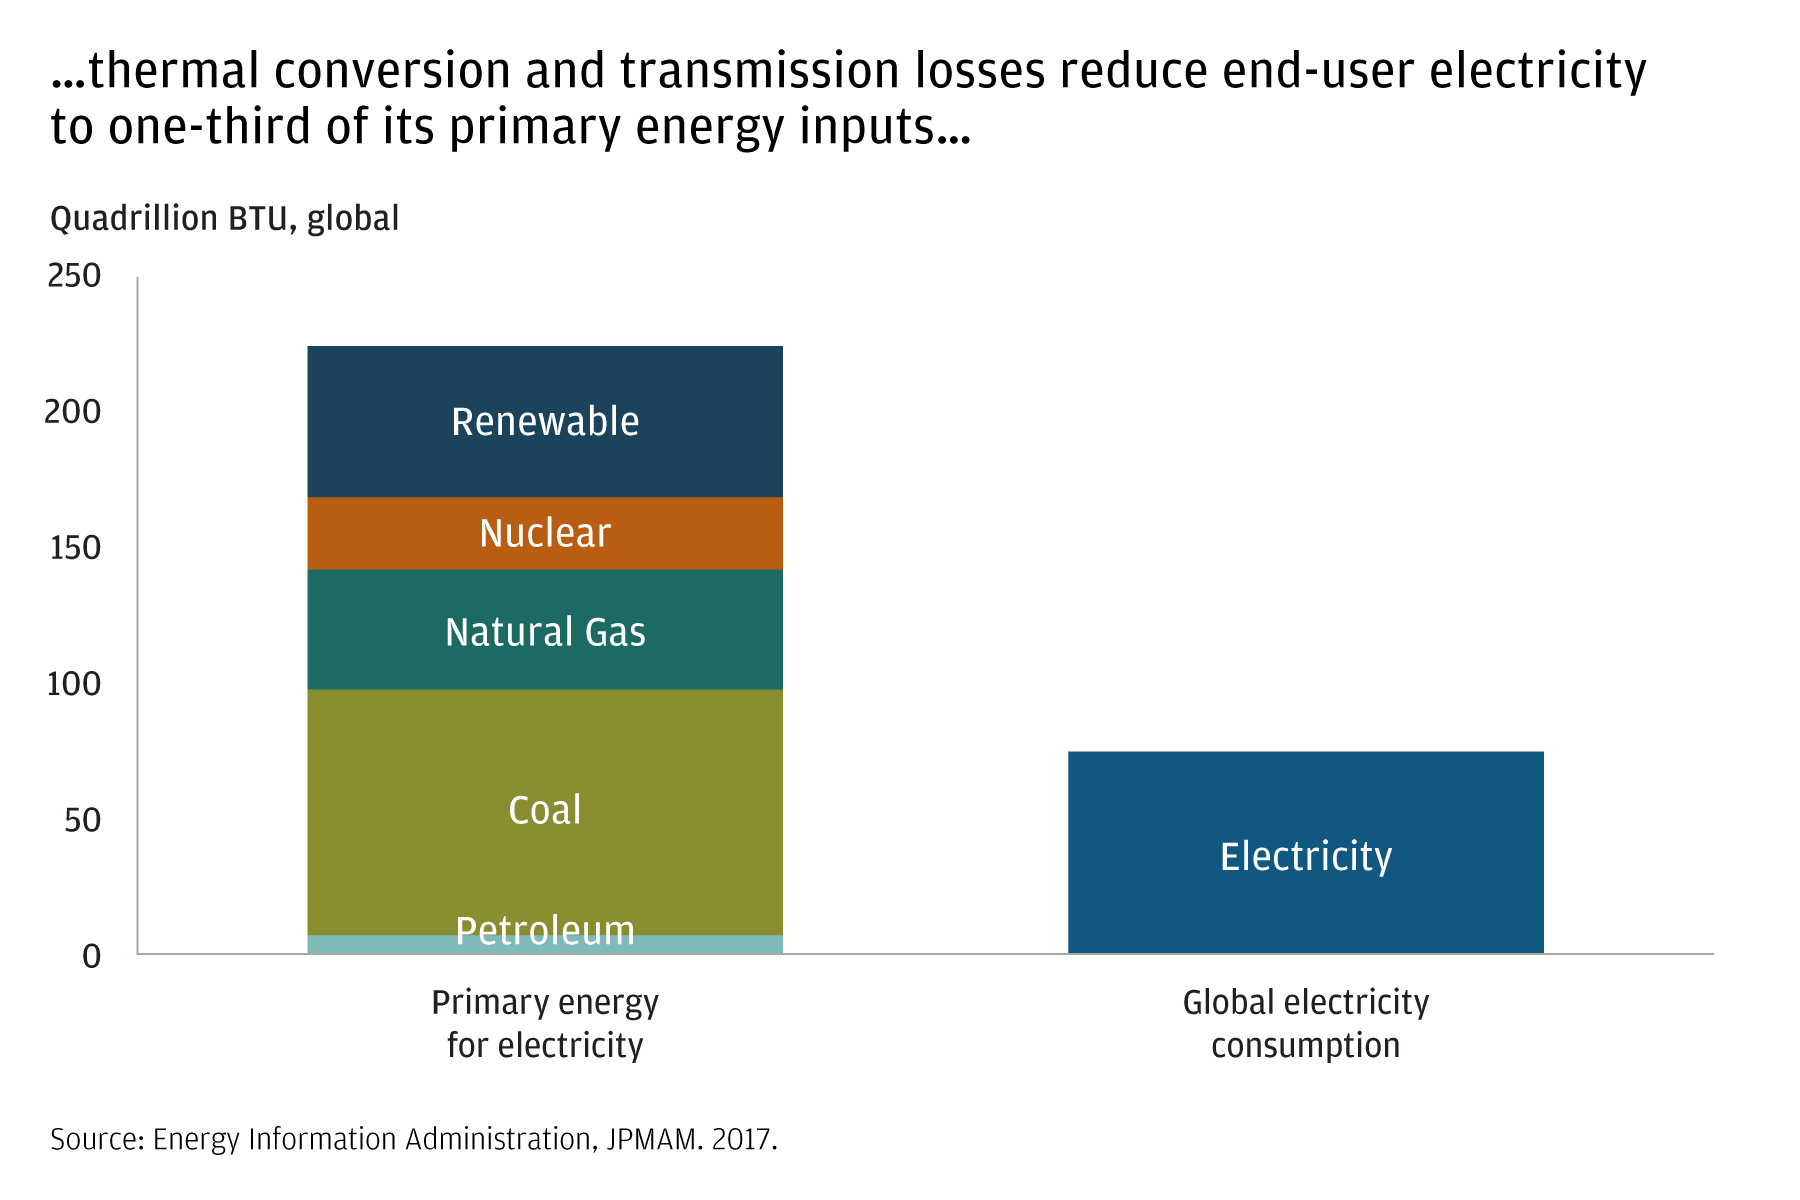 These side-by-side bar charts show the amount of electricity-generating energy lost to thermal conversion, power plant consumption and transmission. End-user electricity represents only about 1/3 of its primary energy inputs.